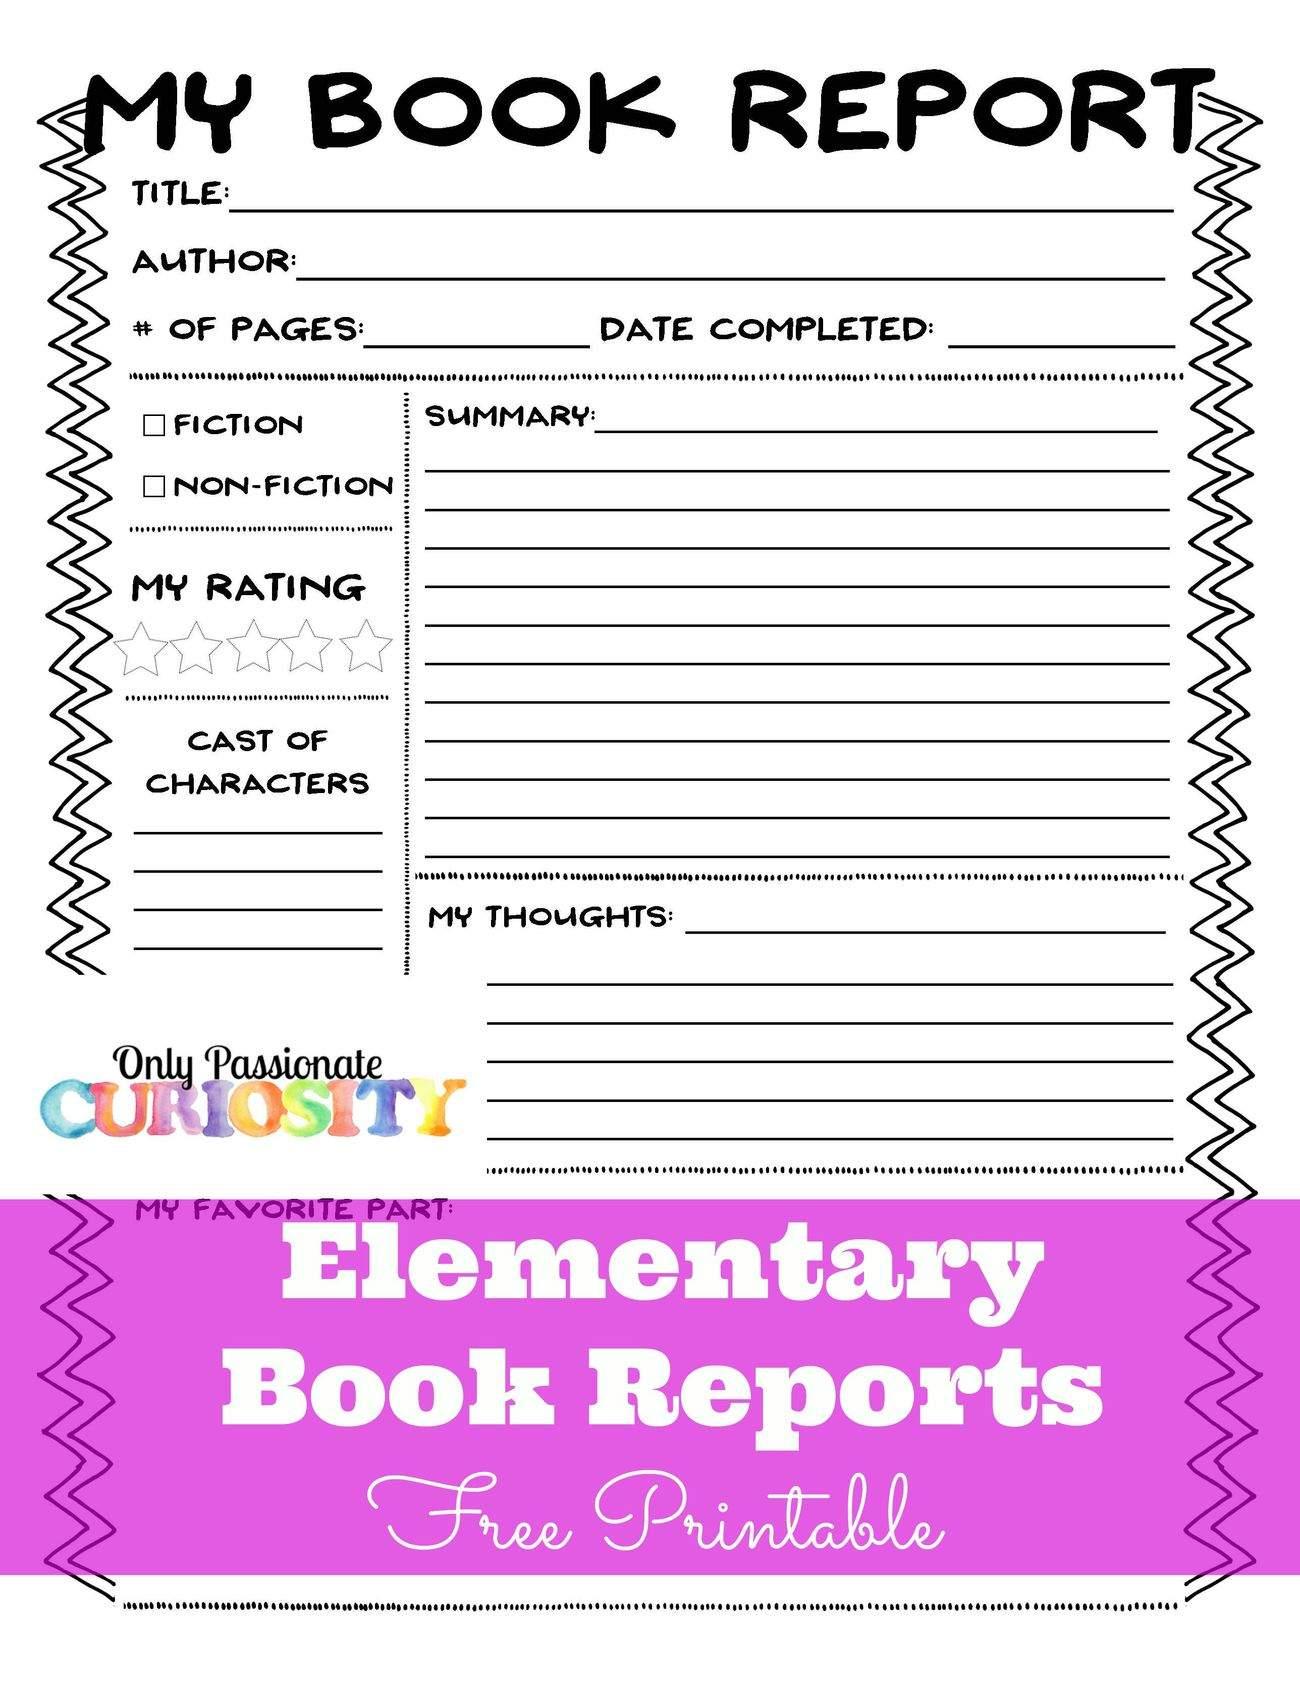 Book report idea for elementary